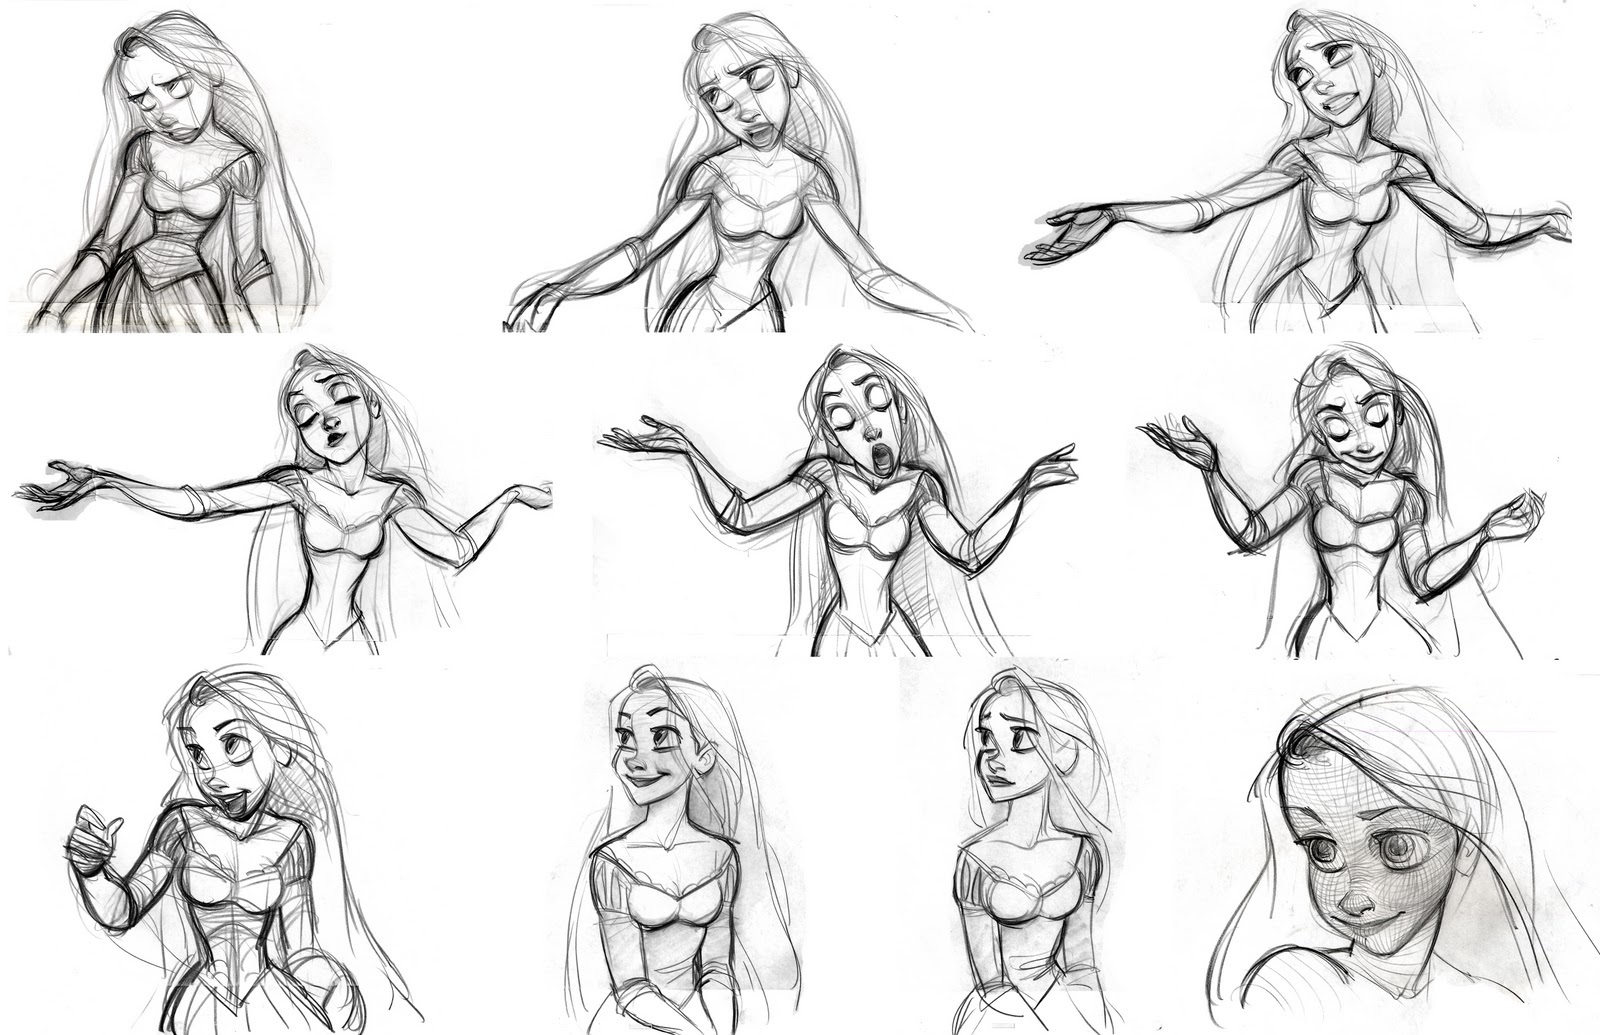 Character Design Body : Disney sketches images tangled sketch hd wallpaper and